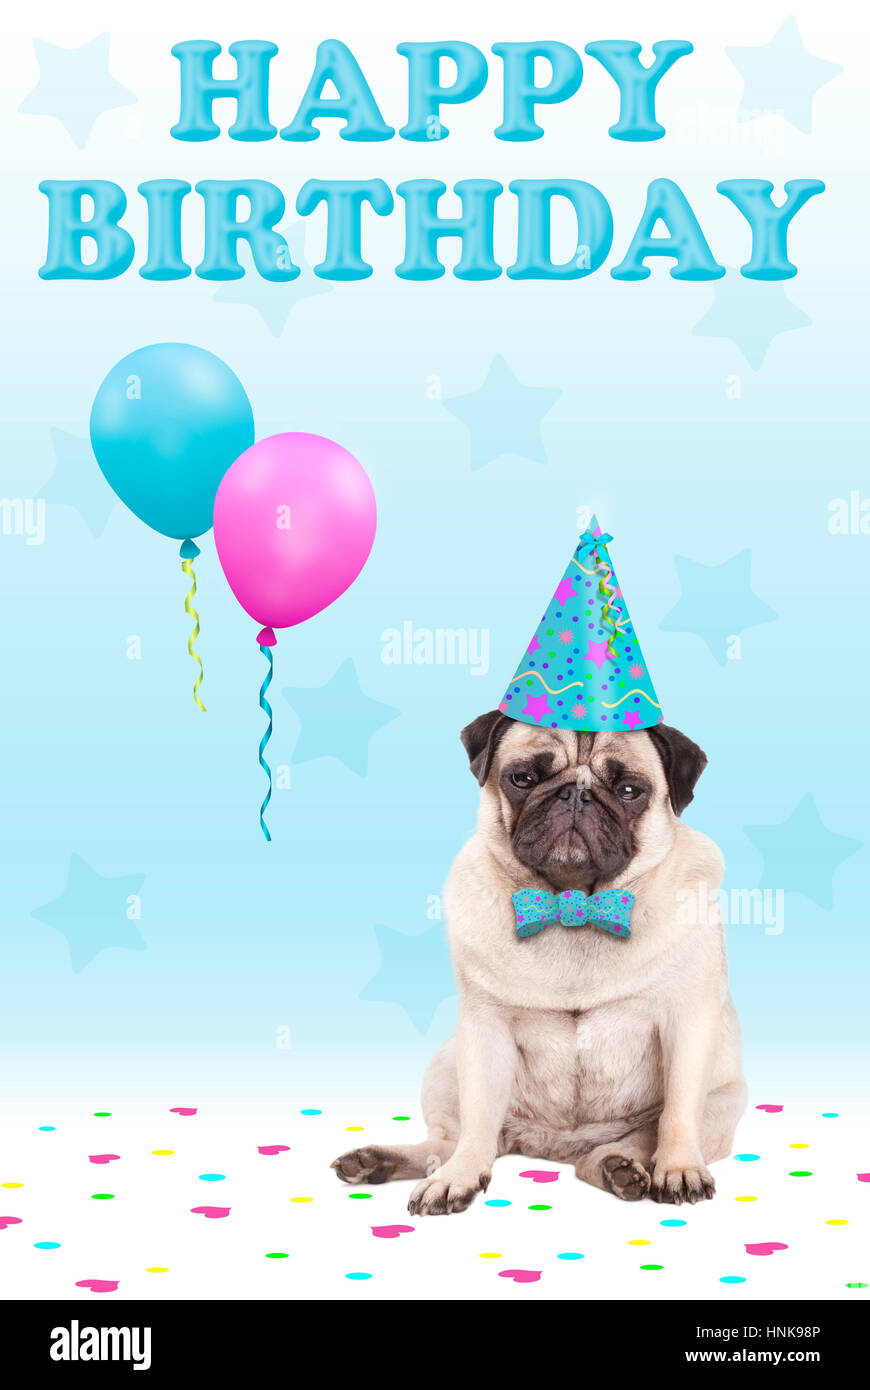 cute grumpy faced pug puppy dog with party hat, balloons, confetti and text happy birthday, on blue background Stock Photo